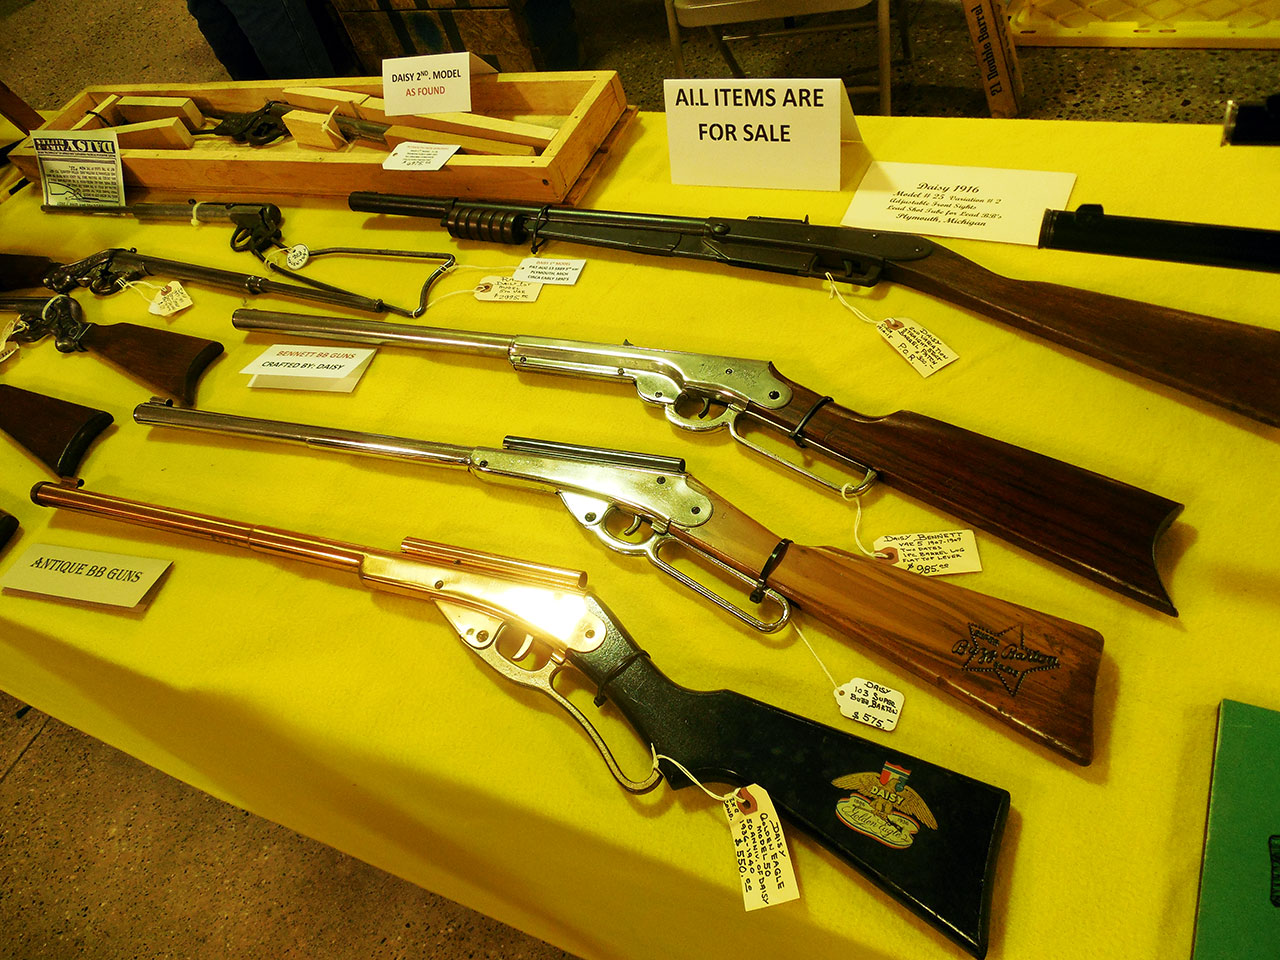 Official Website of The Kalamazoo Airgun Show